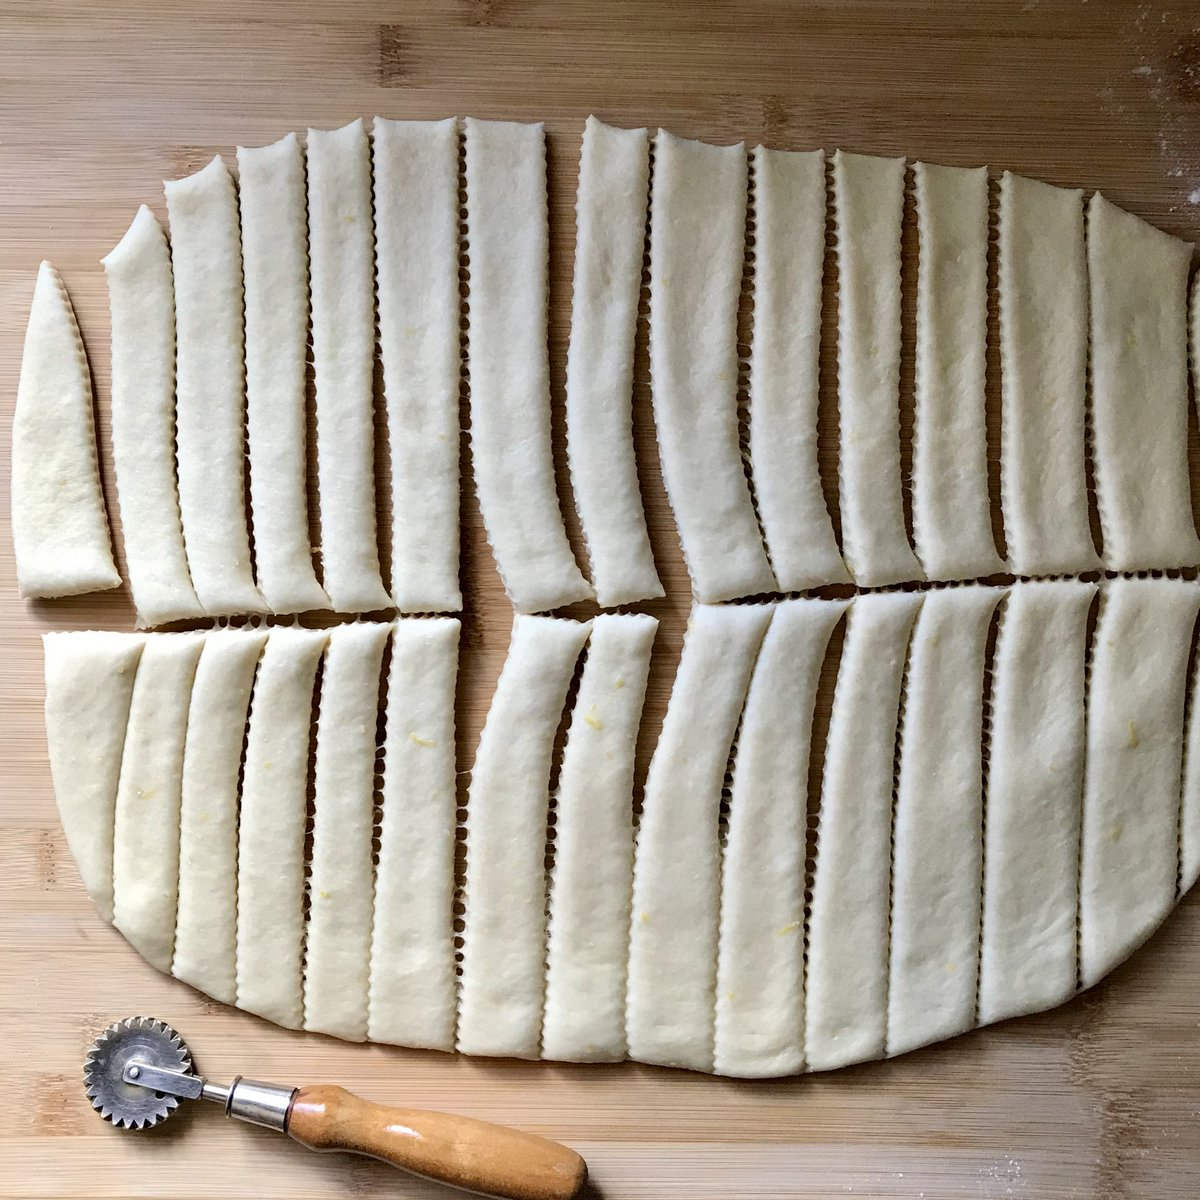 Dough cut into strips.